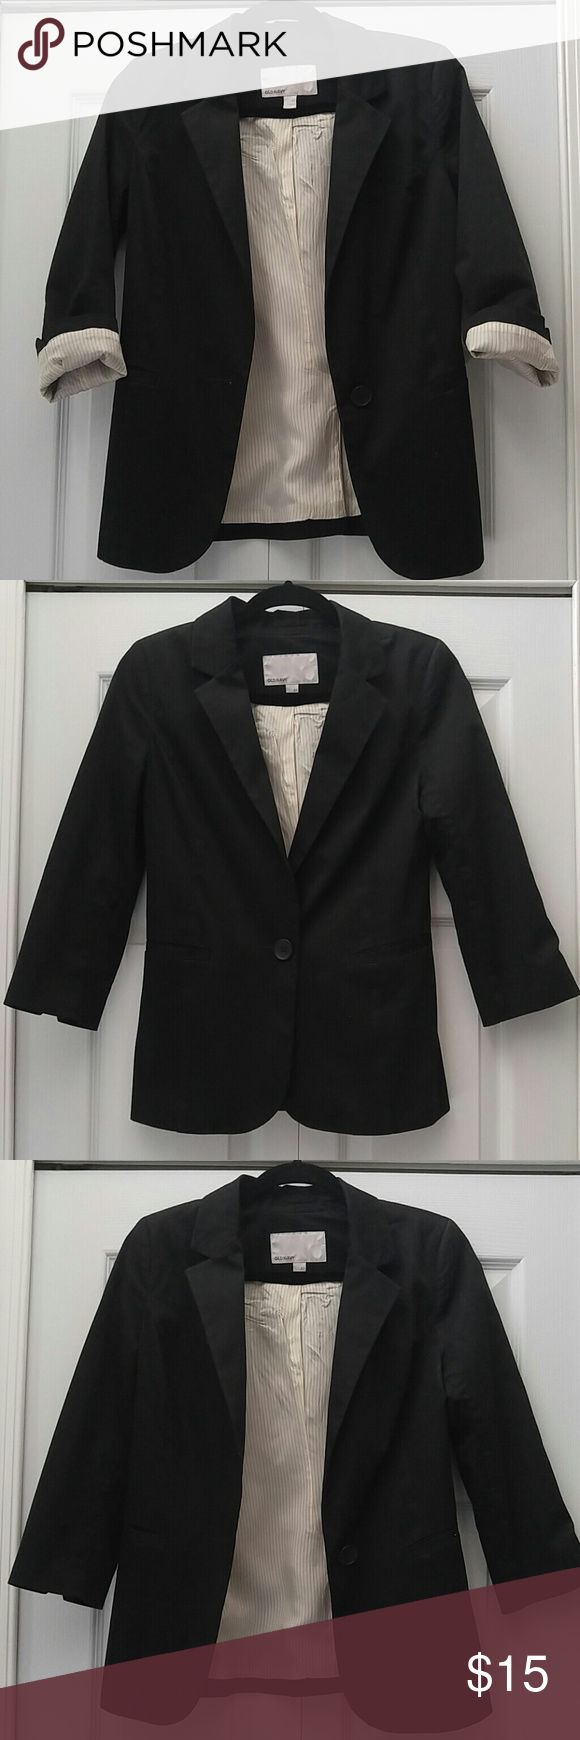 Old Navy Black Blazer Black blazer with 3 quarter length sleeves from Old Navy. Approximately 17 inches armpit to armpit. Approximately 24.5 inches from top of blazer to bottom. Shell: 98% cotton 2% spandex. Lining: 100% Acetate. Excellent condition, no holes, or stains. Buisness professional with slacks or a skirt or dress it down with denim! Old Navy Jackets & Coats Blazers